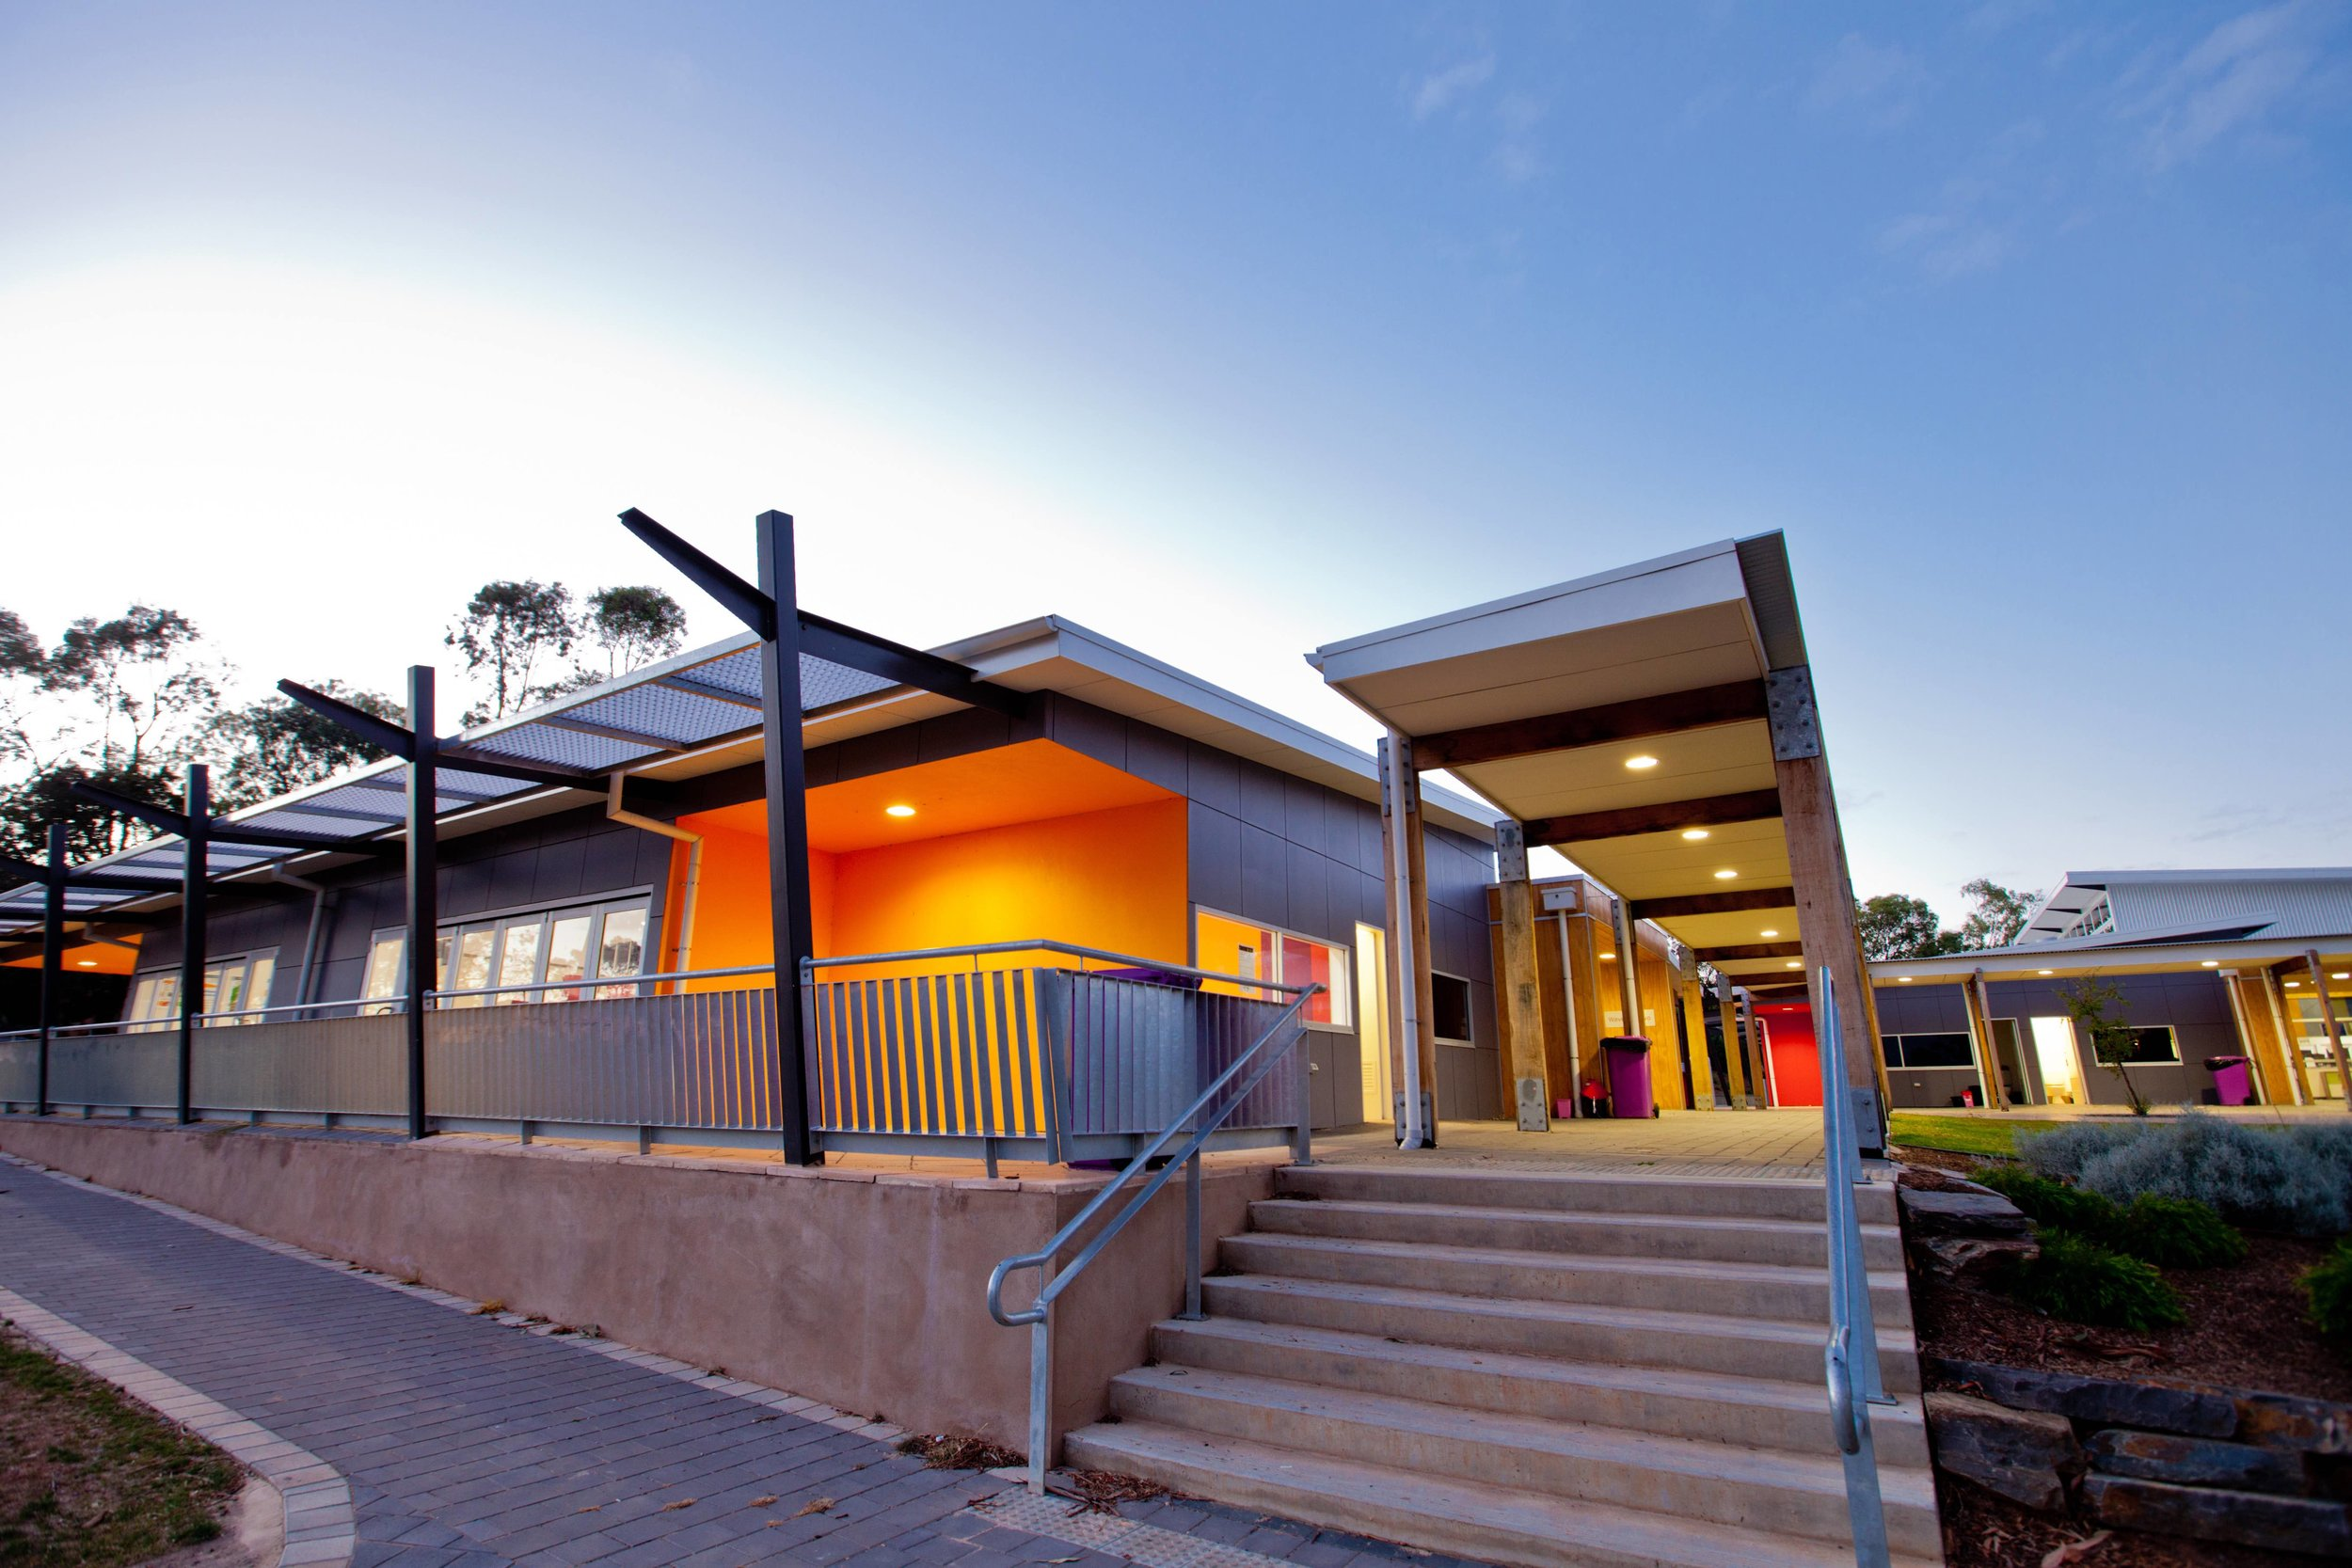 Willunga High School   Middle School Development   Services: Meinhardt Contractor: Building Solutions Photographer: Spruik Photography  Two linked buildings, each containing six classrooms accessed from a central circulation studio. Each classroom contains a breakout space as well as direct access to outdoor landscaped areas via cafe style doors.